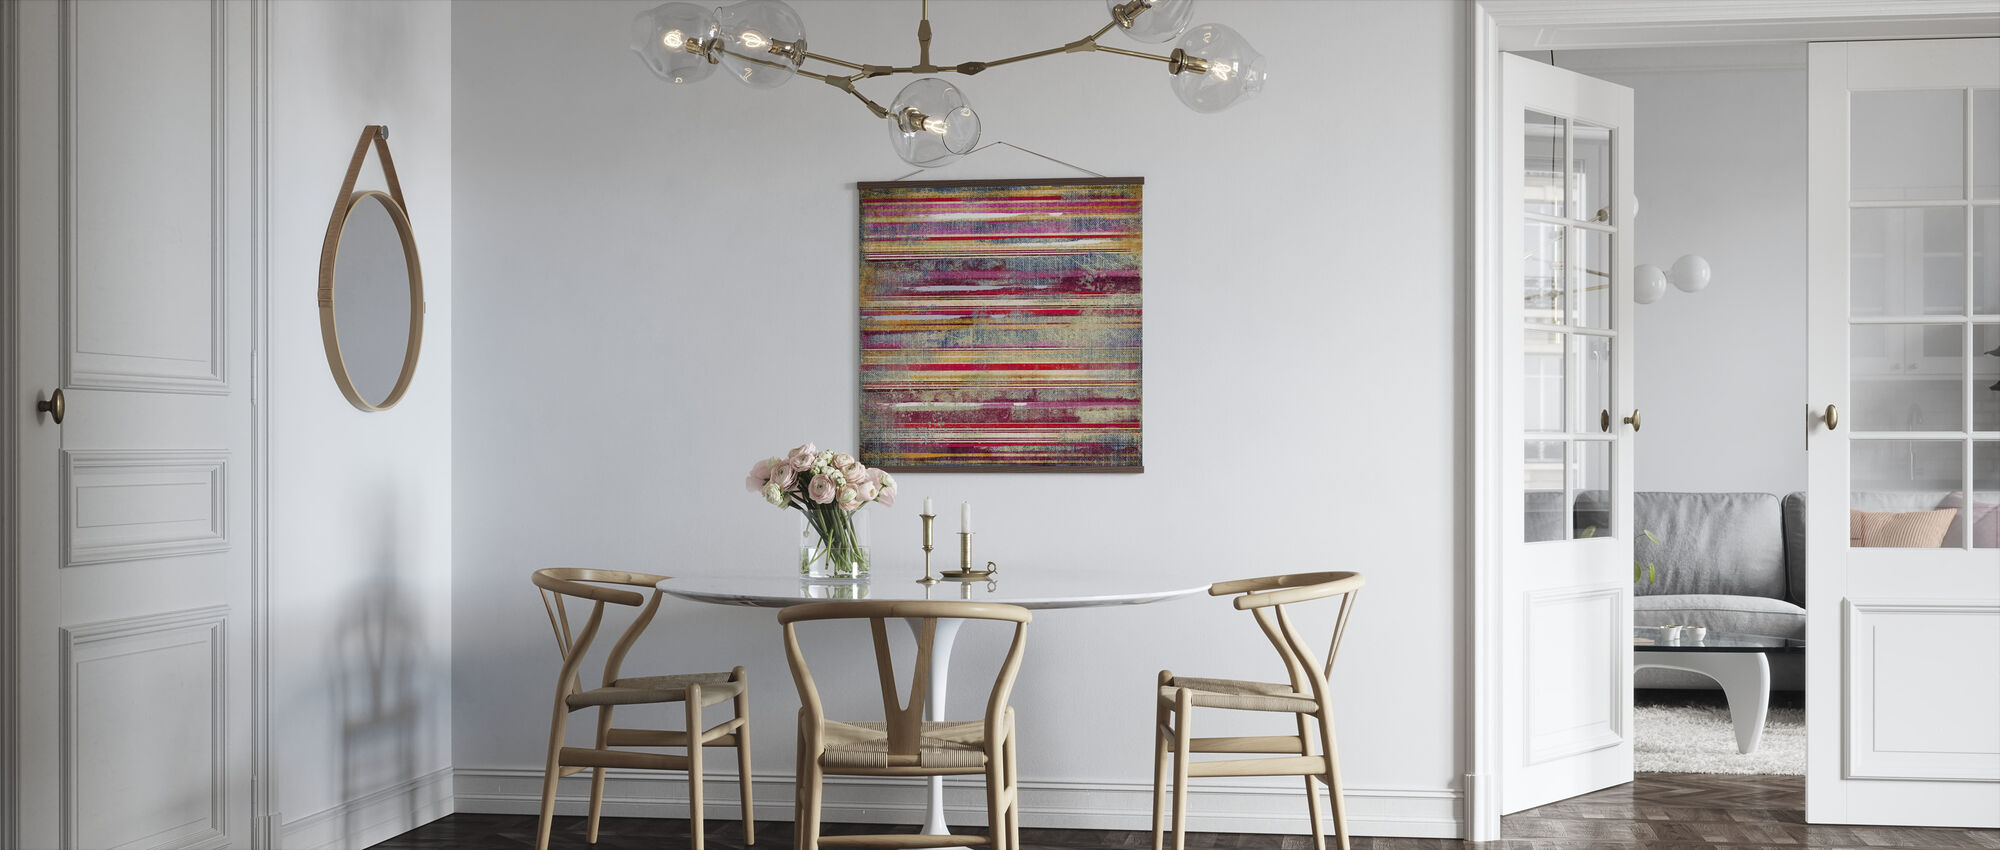 Striped Fabric - Poster - Kitchen